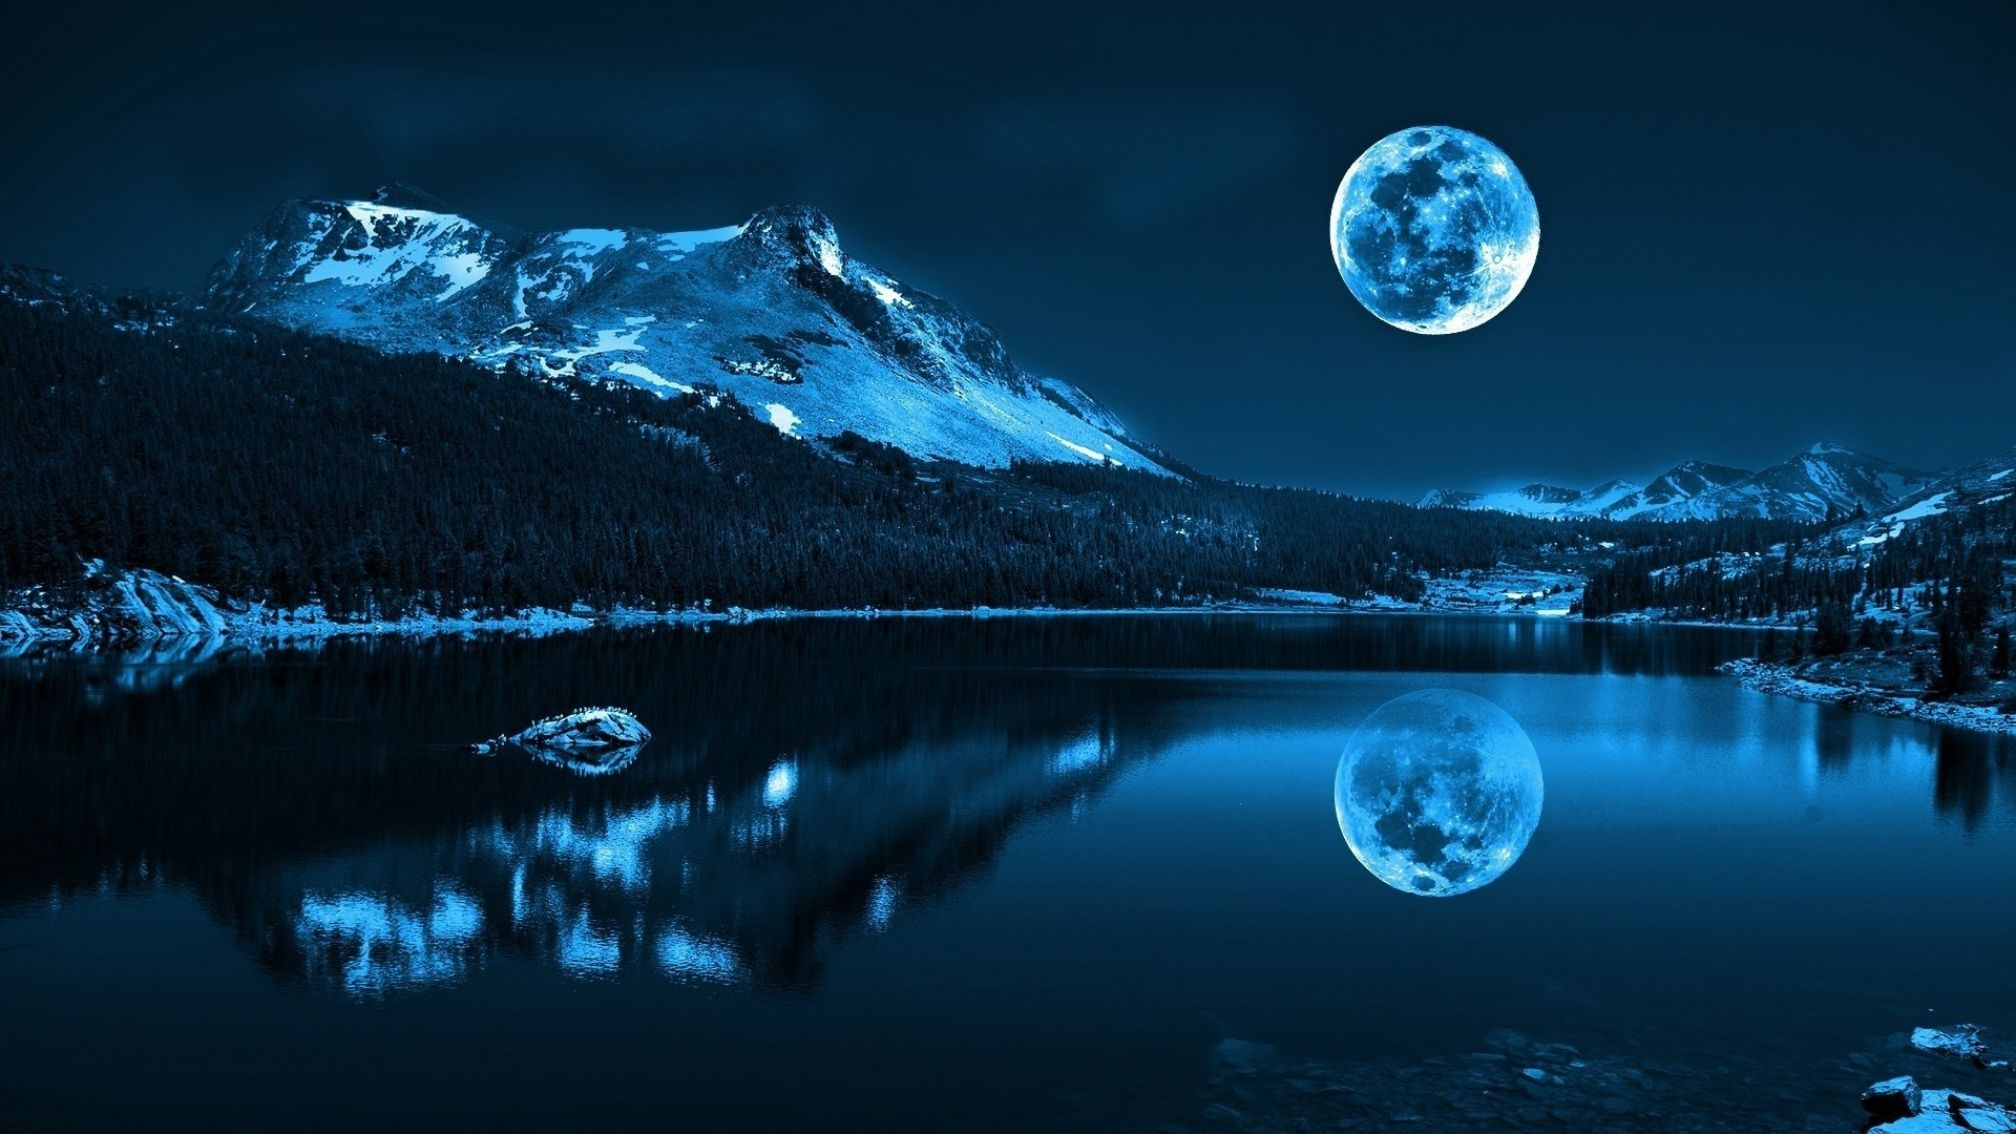 Image For 3d Wallpaper Of Lake And Moon Wallpaper Backgrounds Hd Wallpapers Beautiful Moon Beautiful Nature Scenery